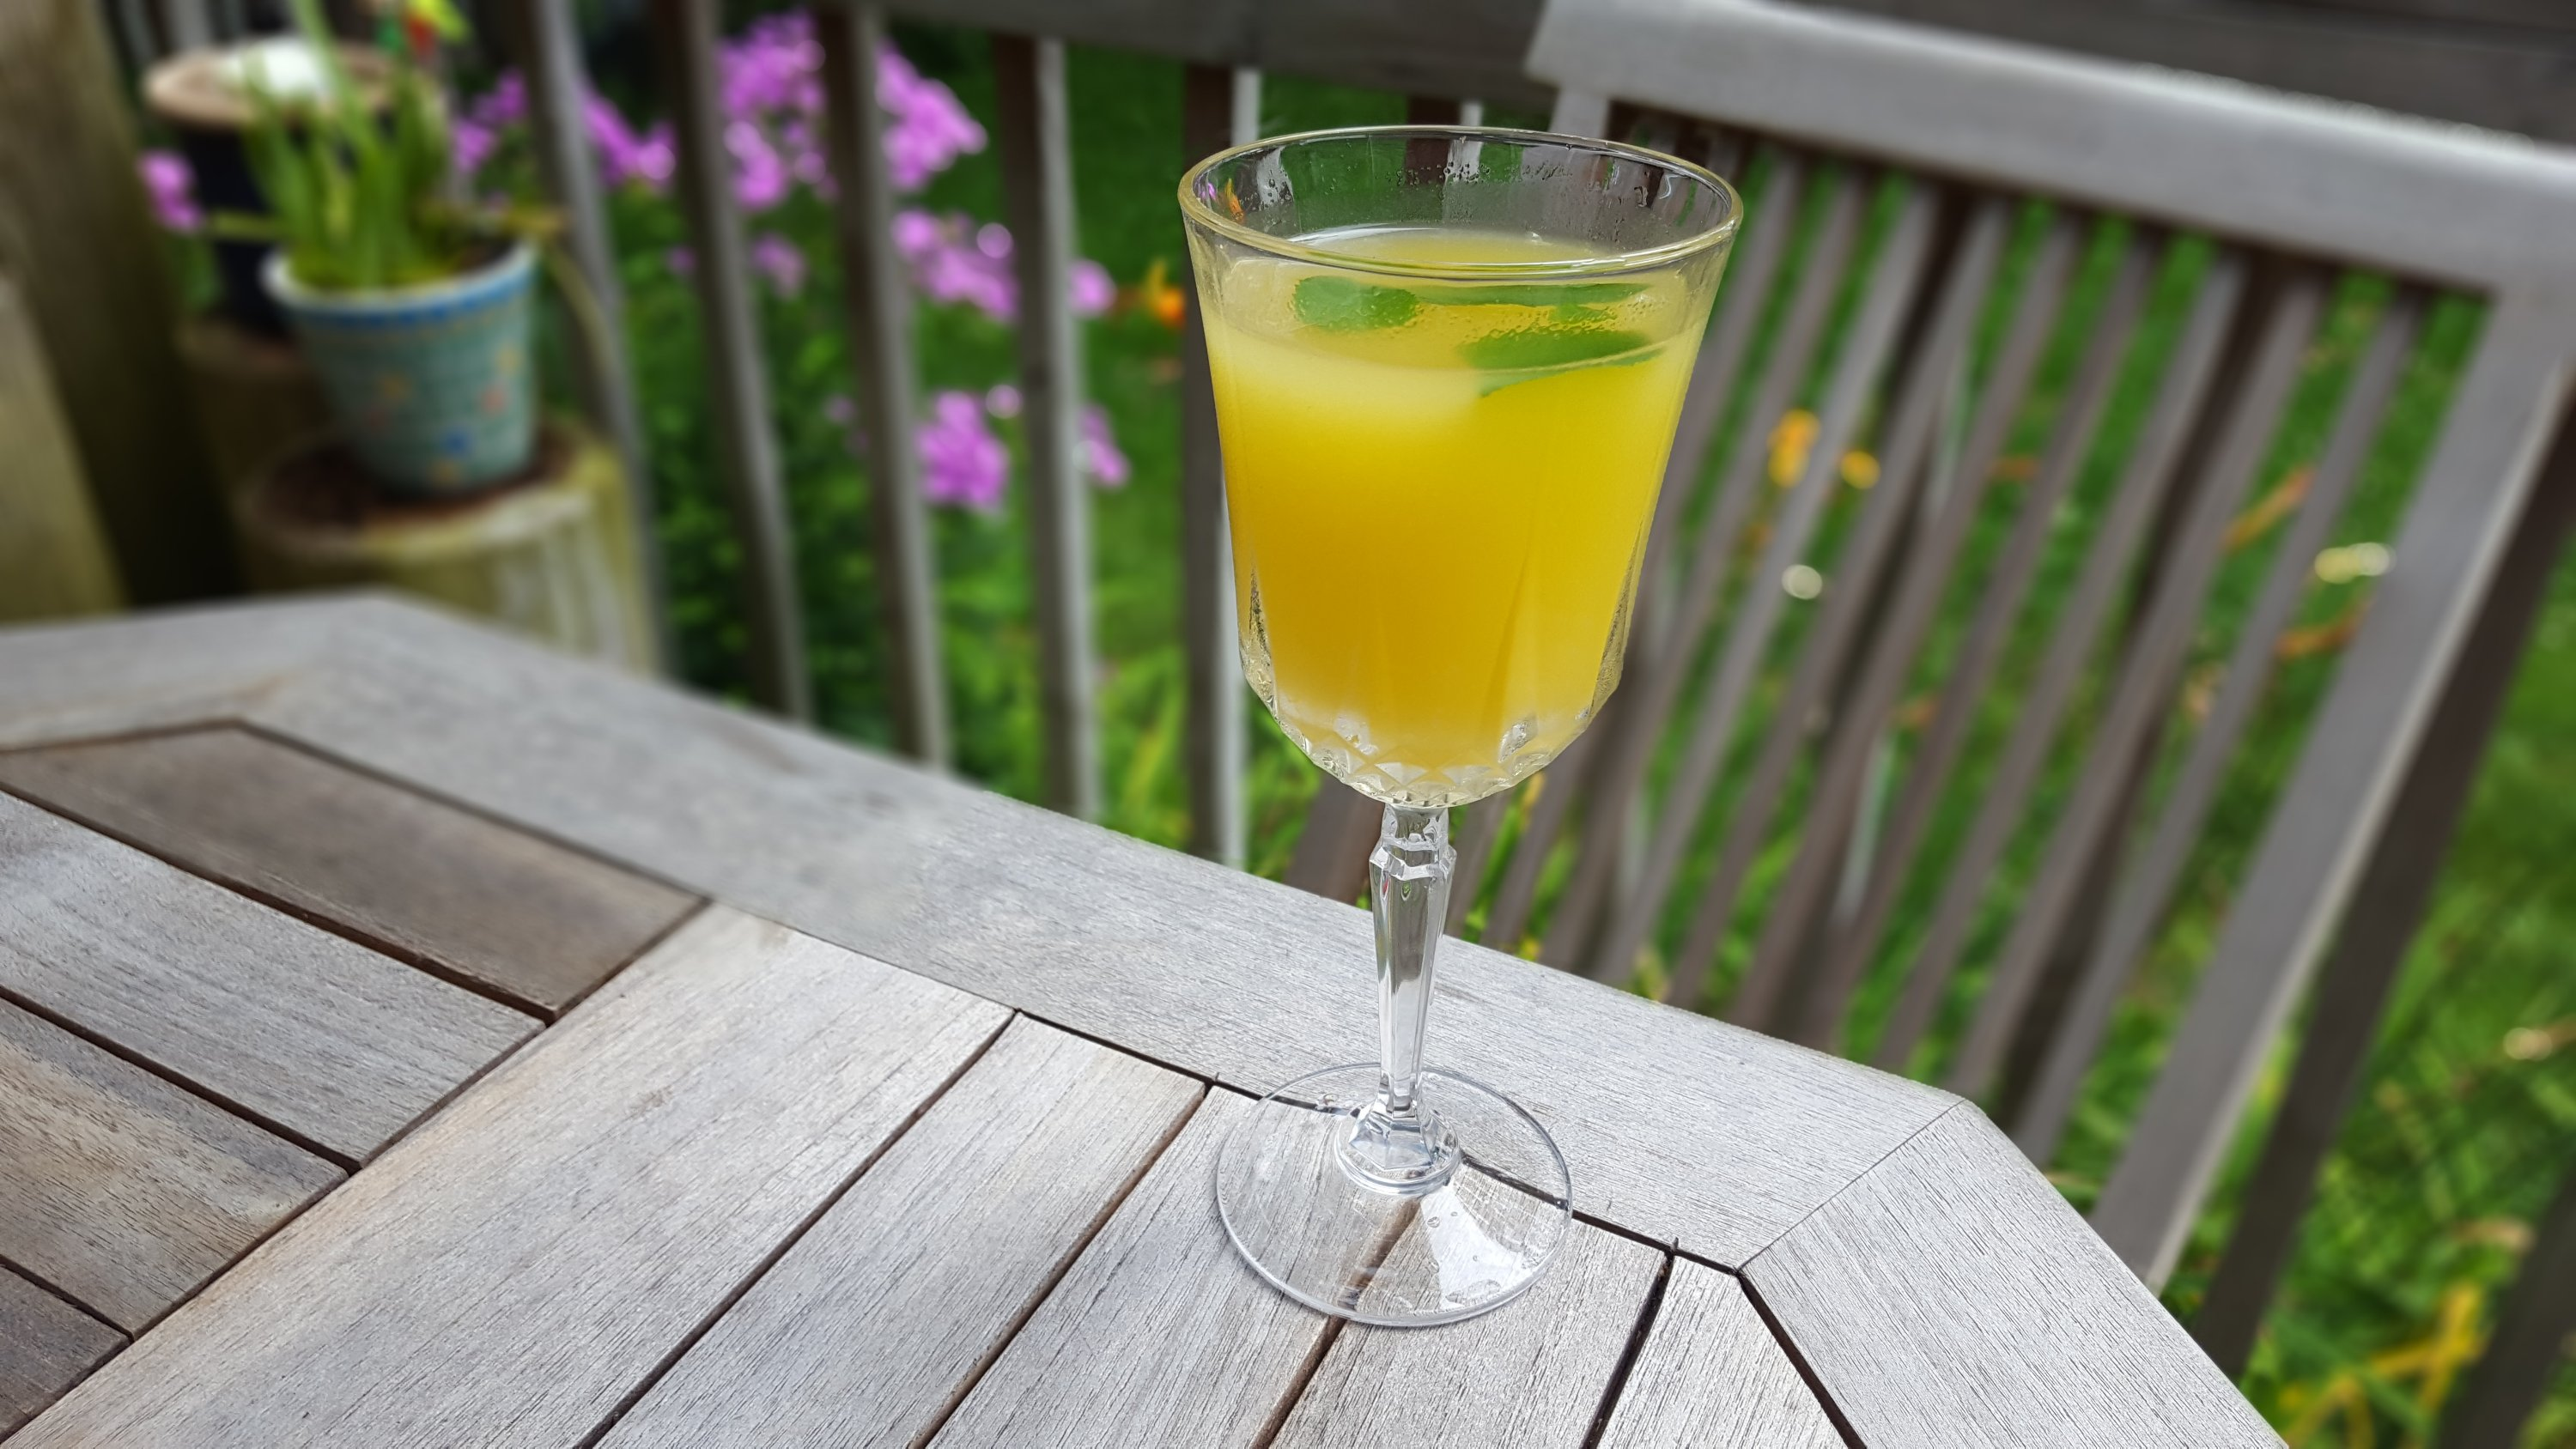 pineapple cocktail with mint and ginger served in a wine glass on a porch in the summertime